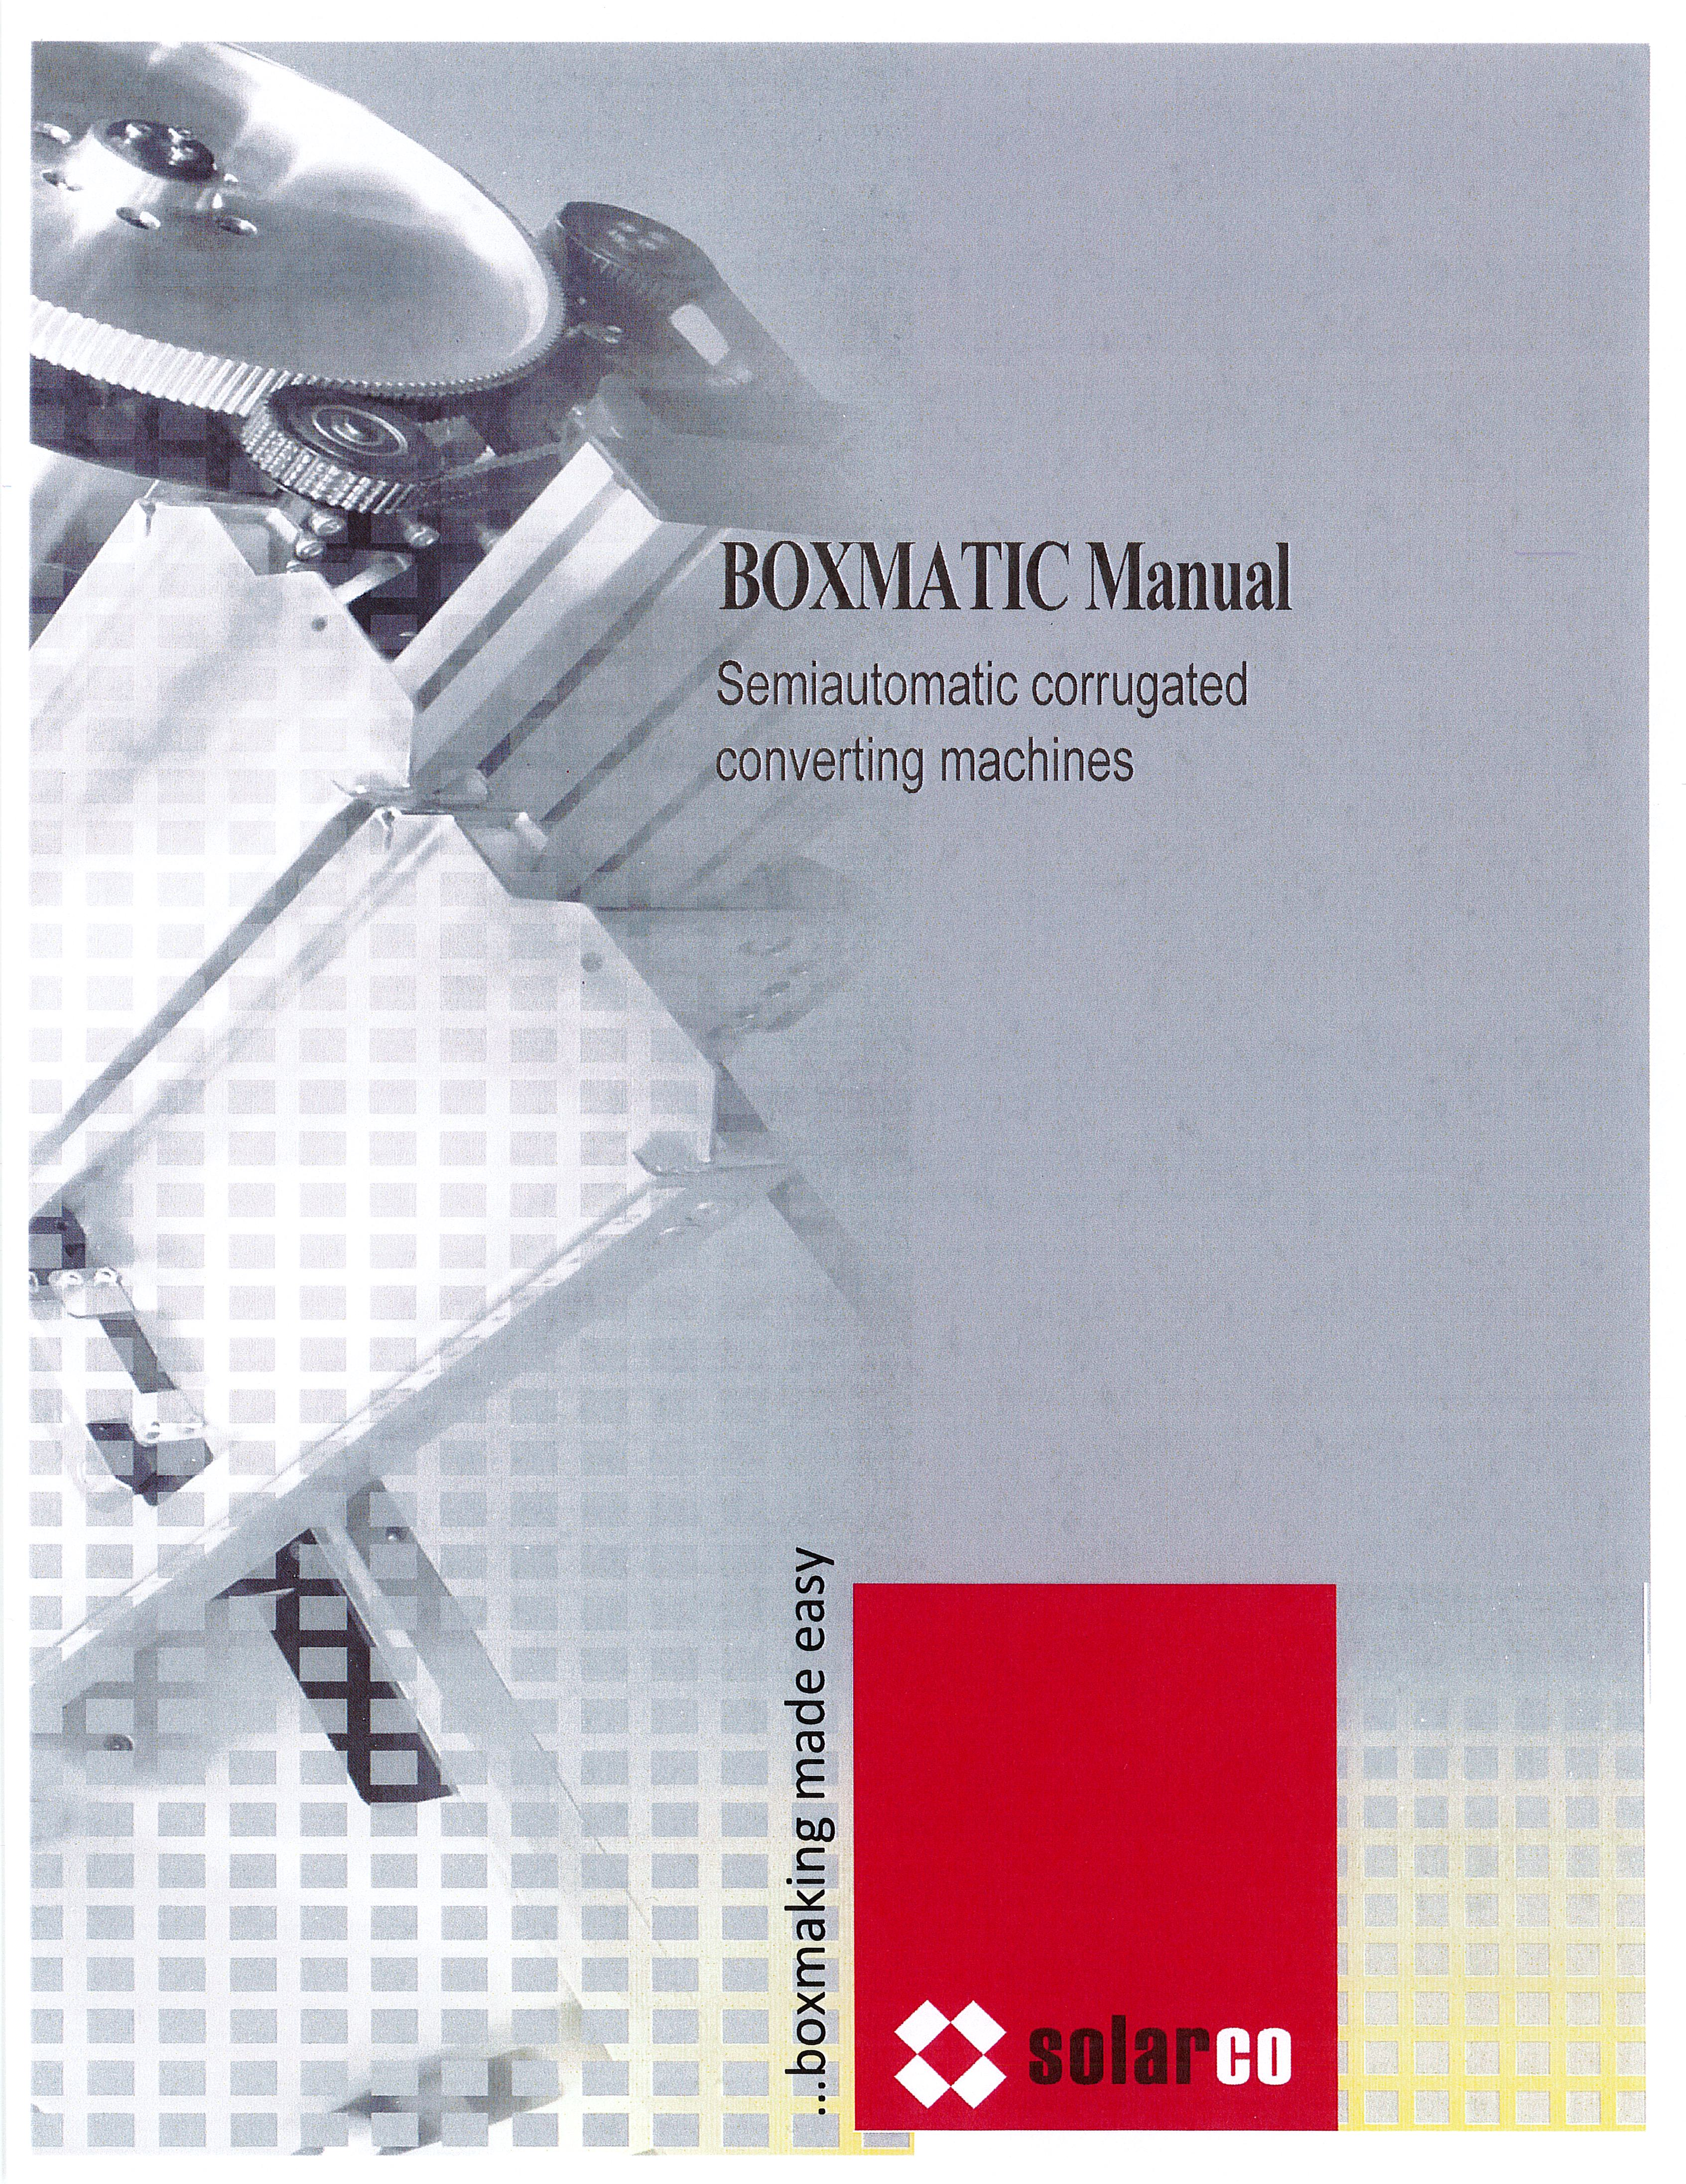 Learn more in the Solarco BOXMATIC Manual brochure